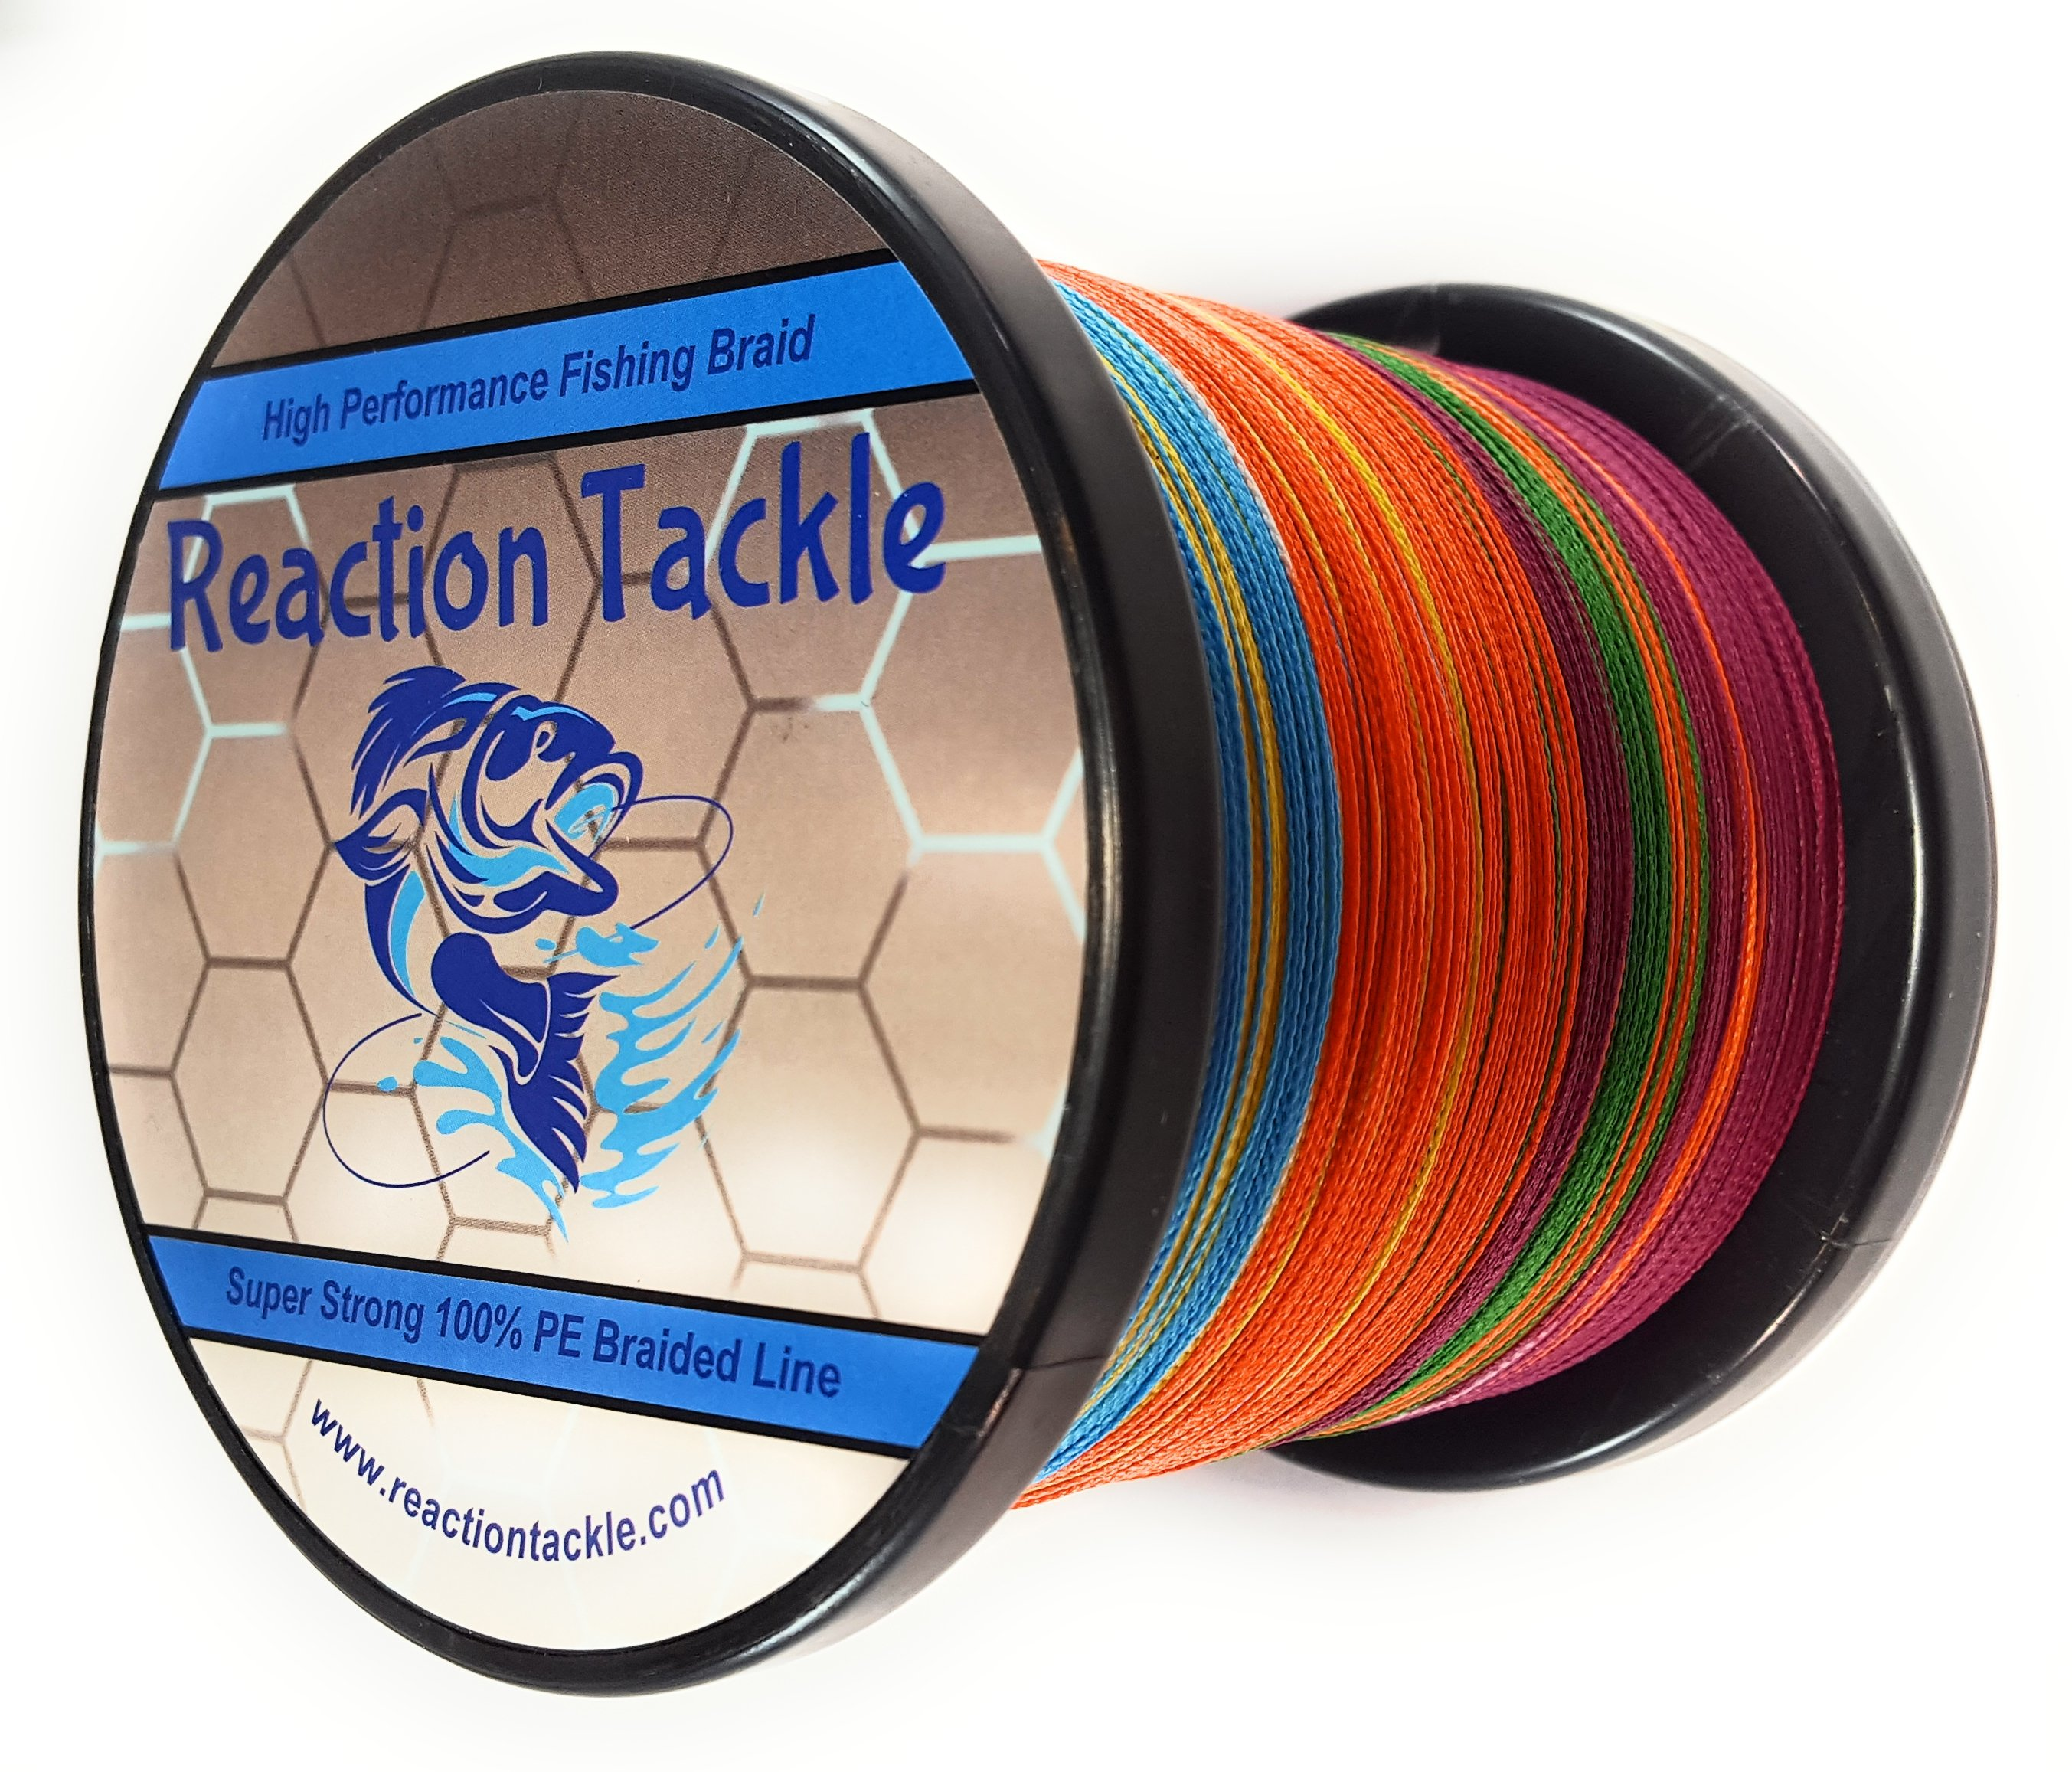 Reaction Tackle High Performance Braided Fishing Line- Multi-Color ...